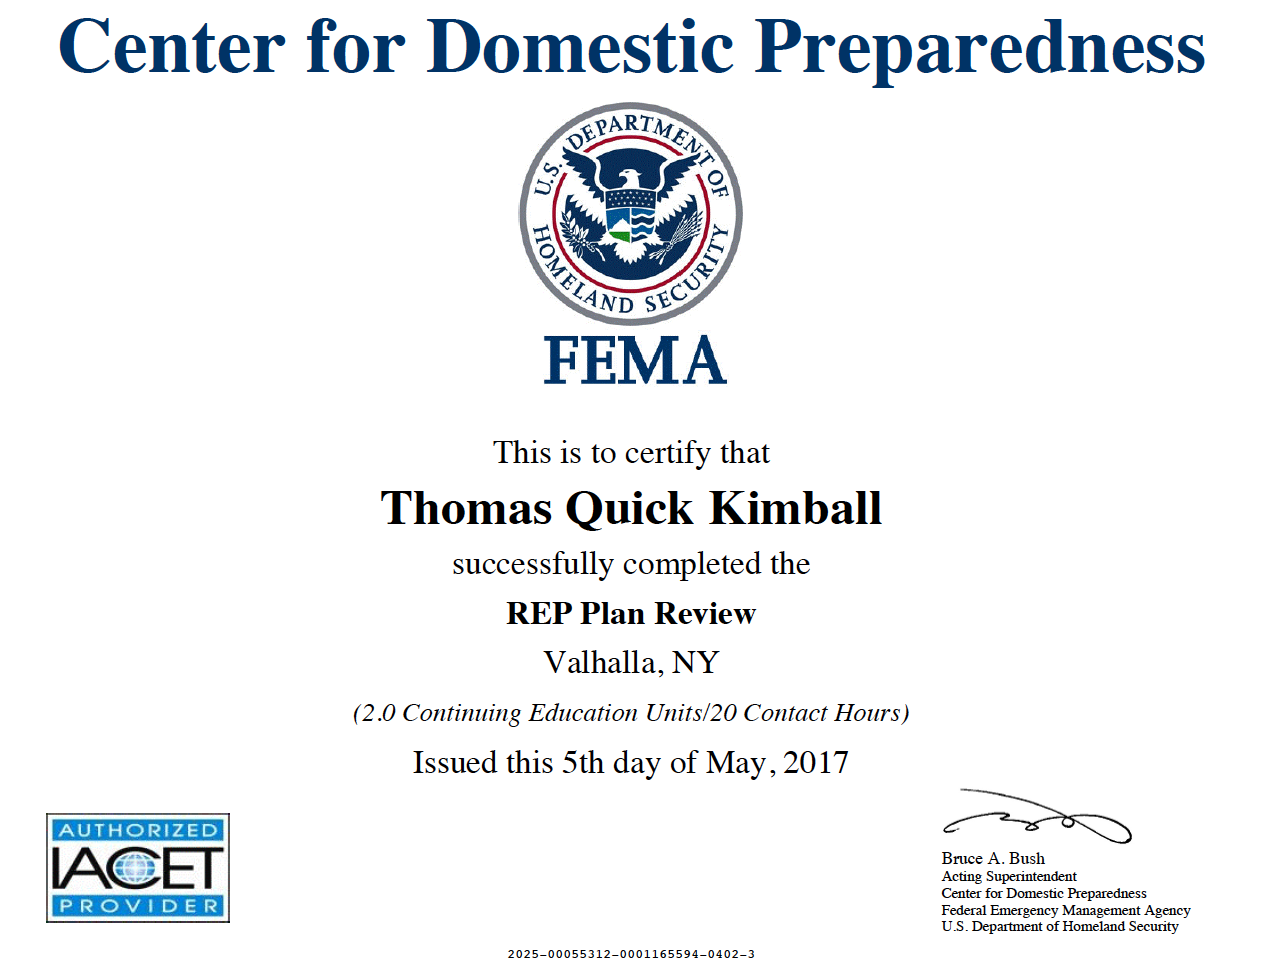 MGT-445 Radiological Emergency Preparedness (REP) Plan Overview. REP Plan Review